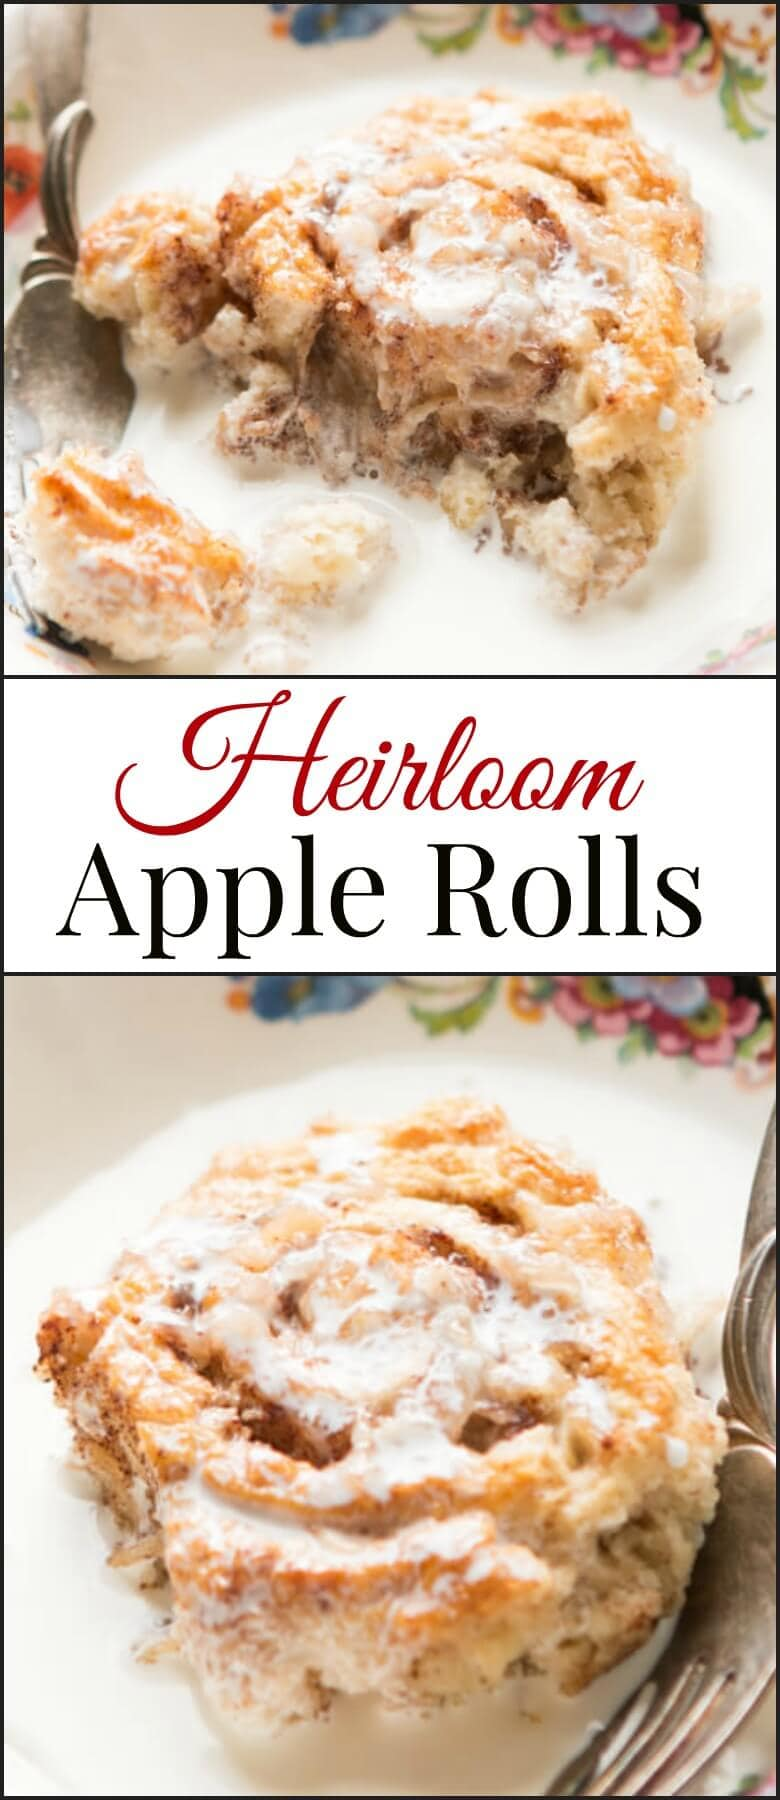 Heirloom apple rolls are one of my favorite recipes and it's been passed down through our family for over 200 years! ohsweetbasil.com